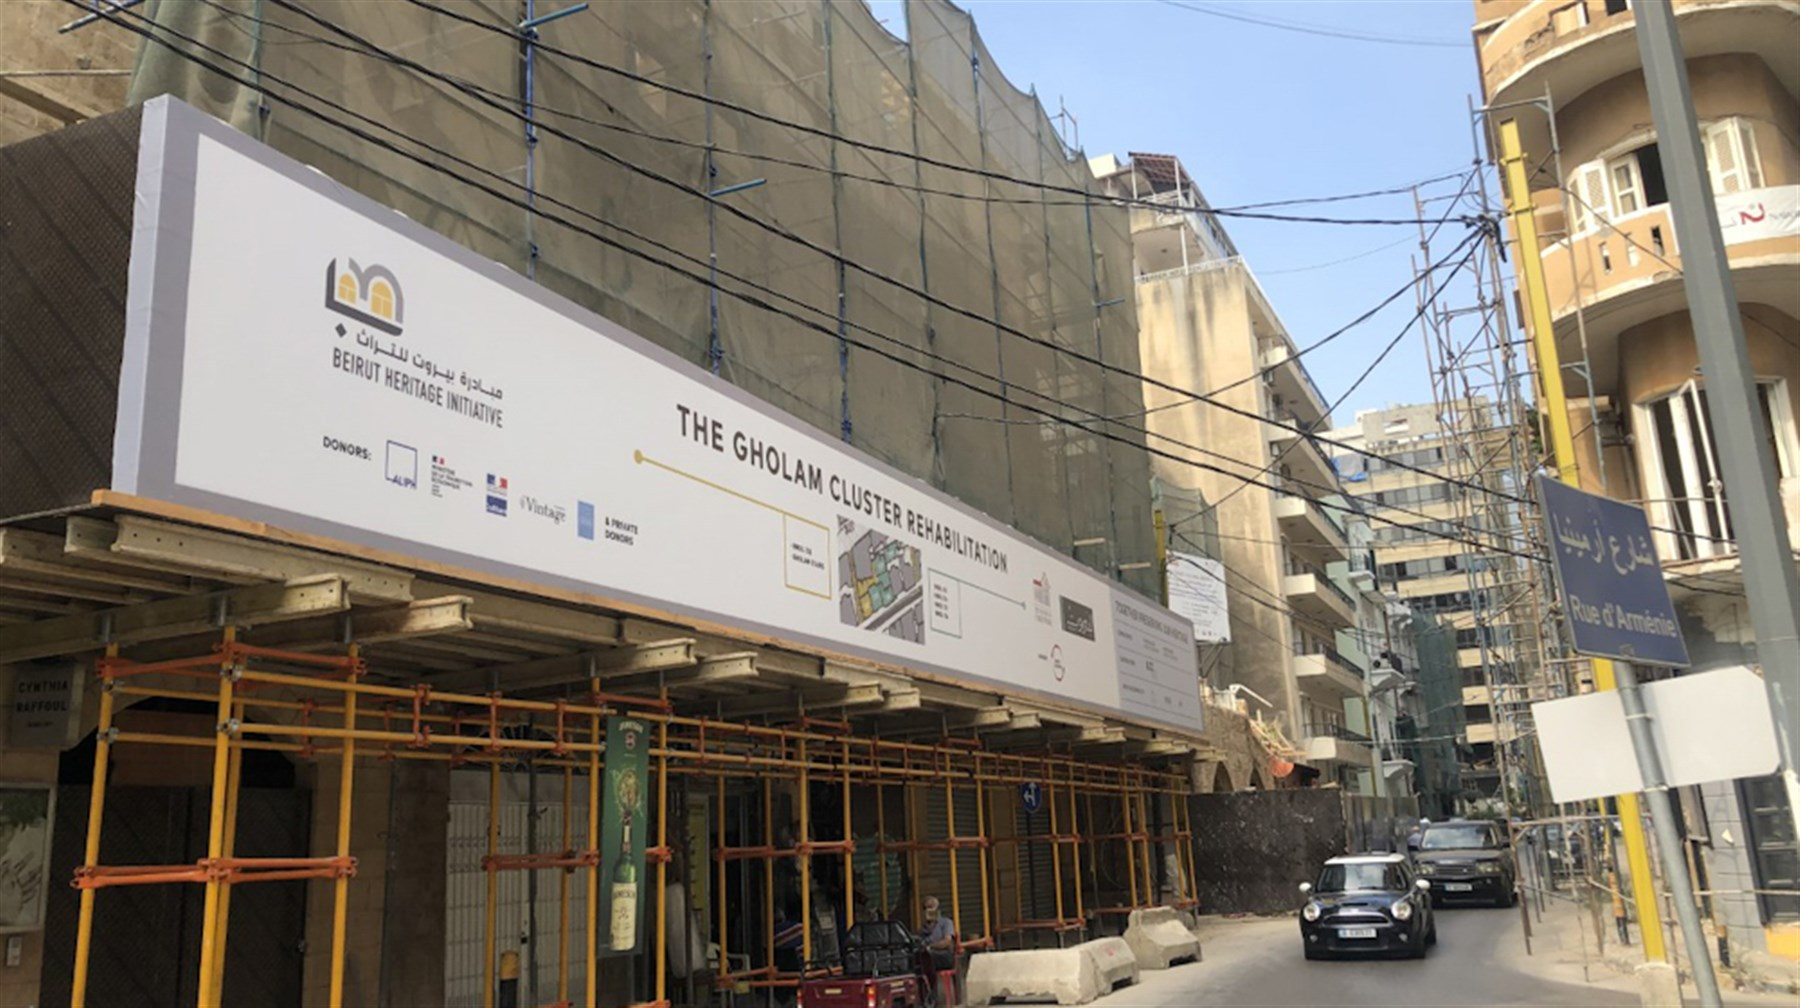 Post-blast reconstruction works by NGOs in Gemmayzeh/Mar Mikhael (Photo: Mona Harb, August 2021)